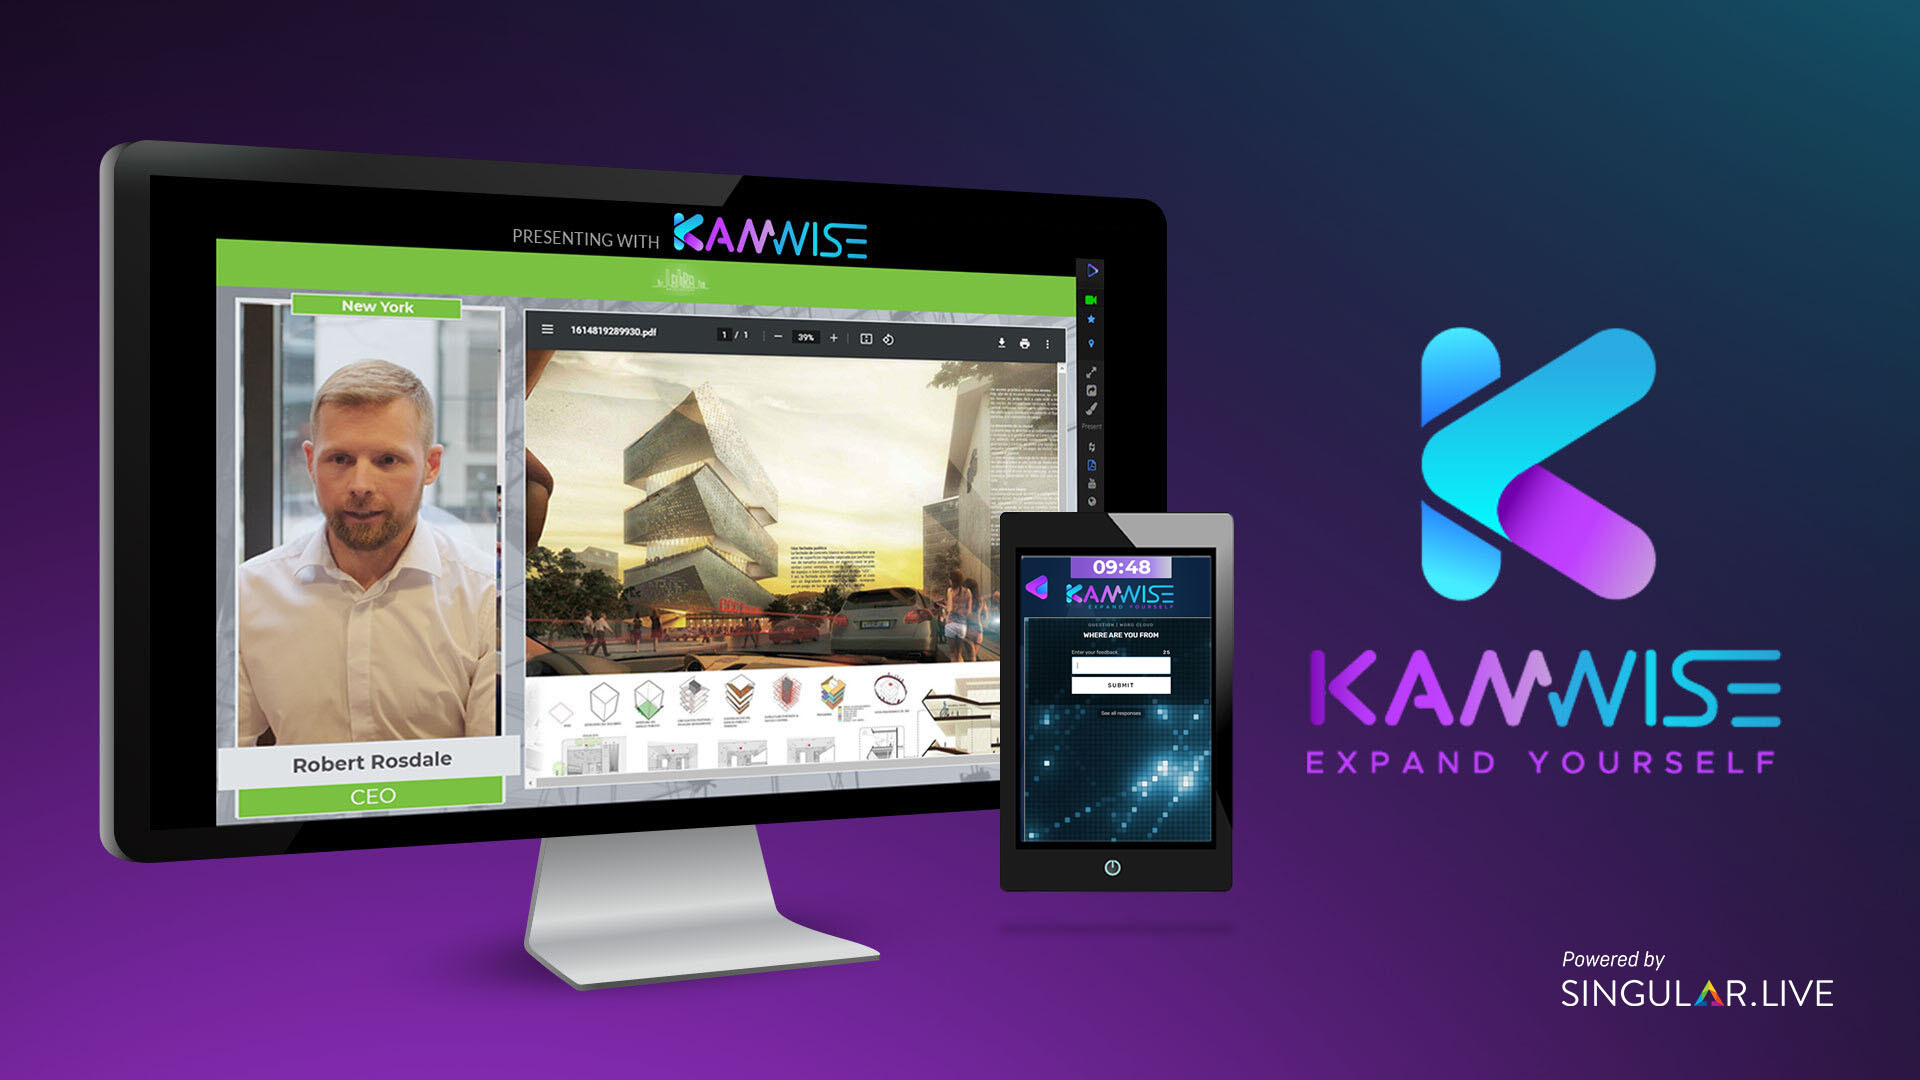 KamWise - The App Redefining Virtual Events